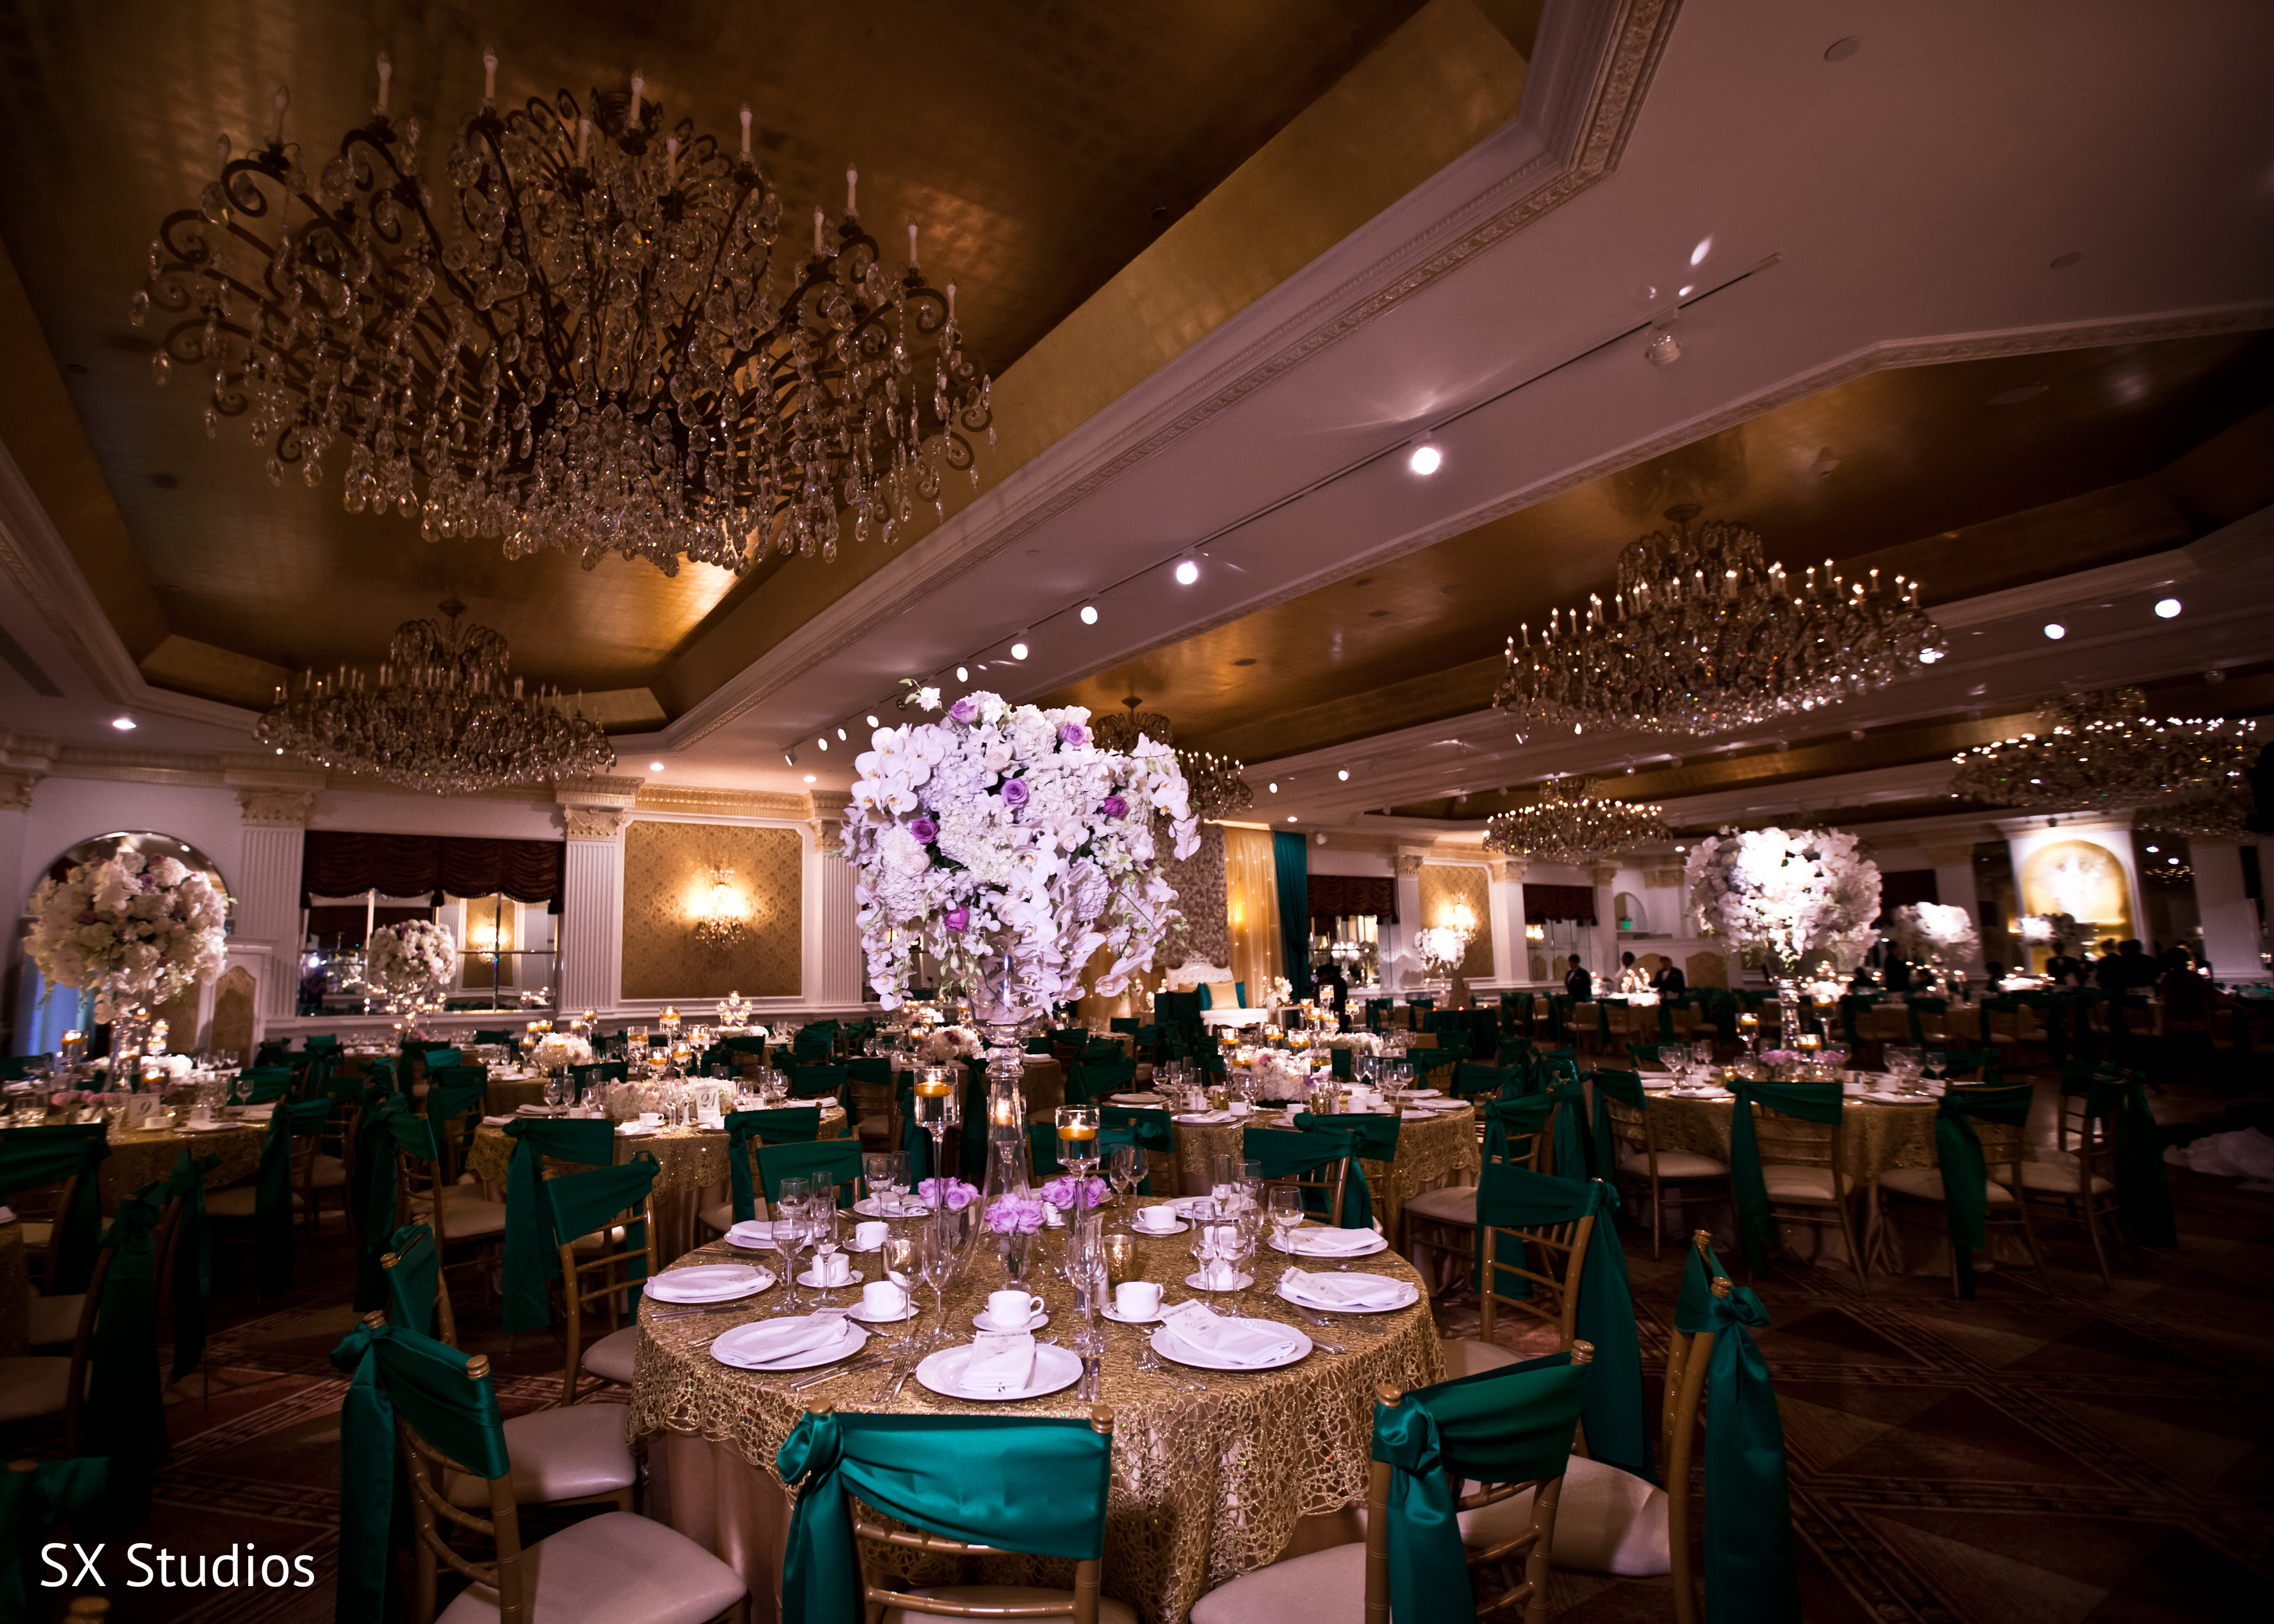 Floral decor in woodbury ny indian wedding by sx for Indian jewelry in schaumburg il